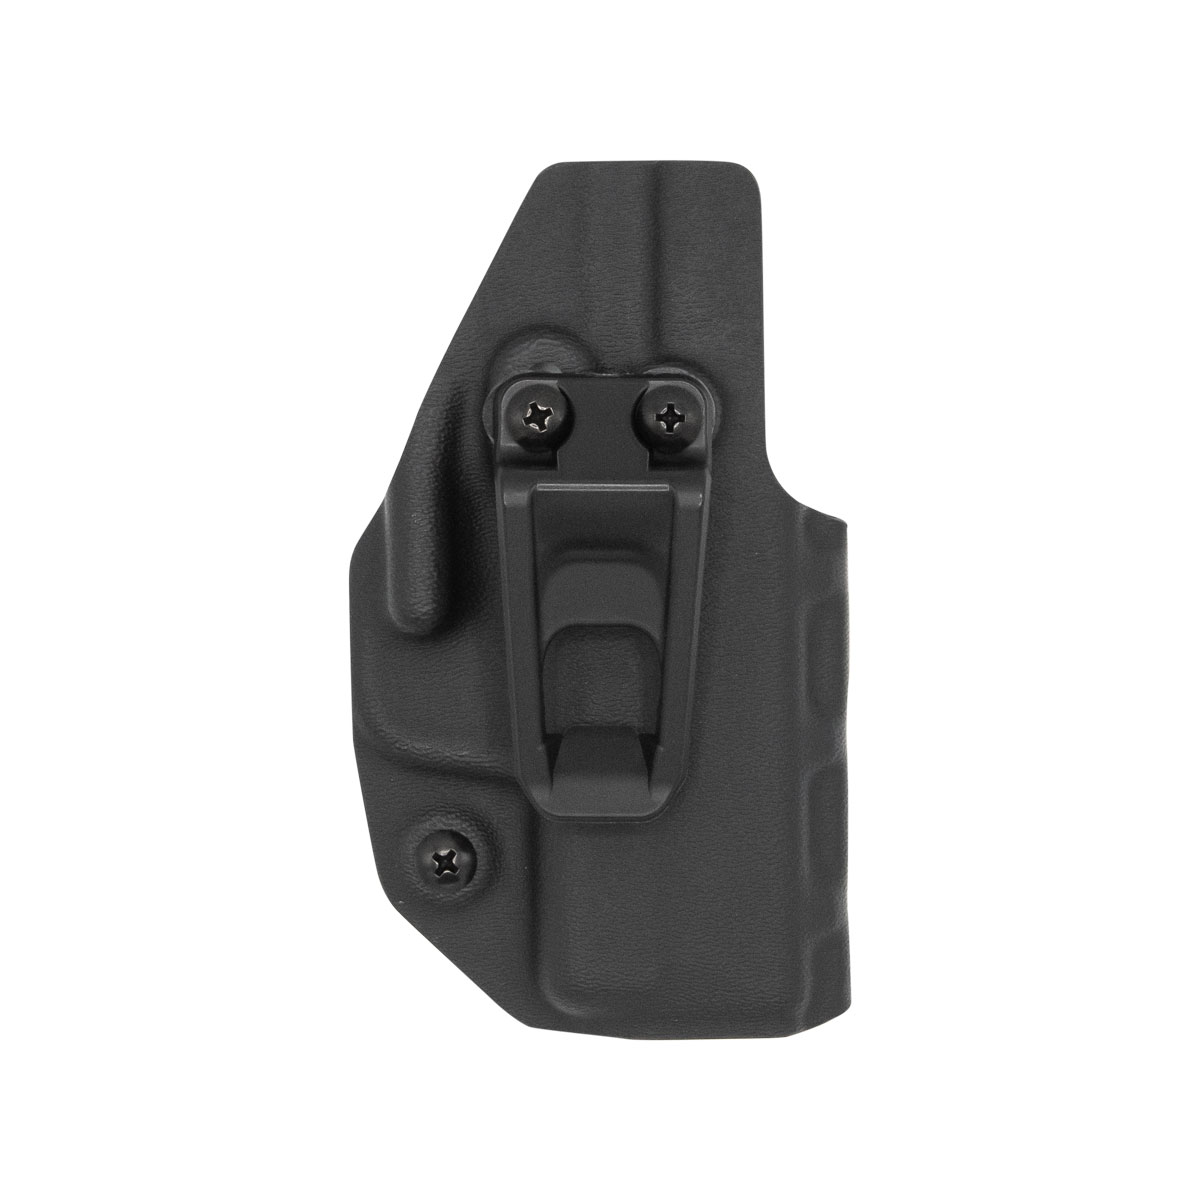 CRUCIAL CONCEALMENT COVERT HOLSTER